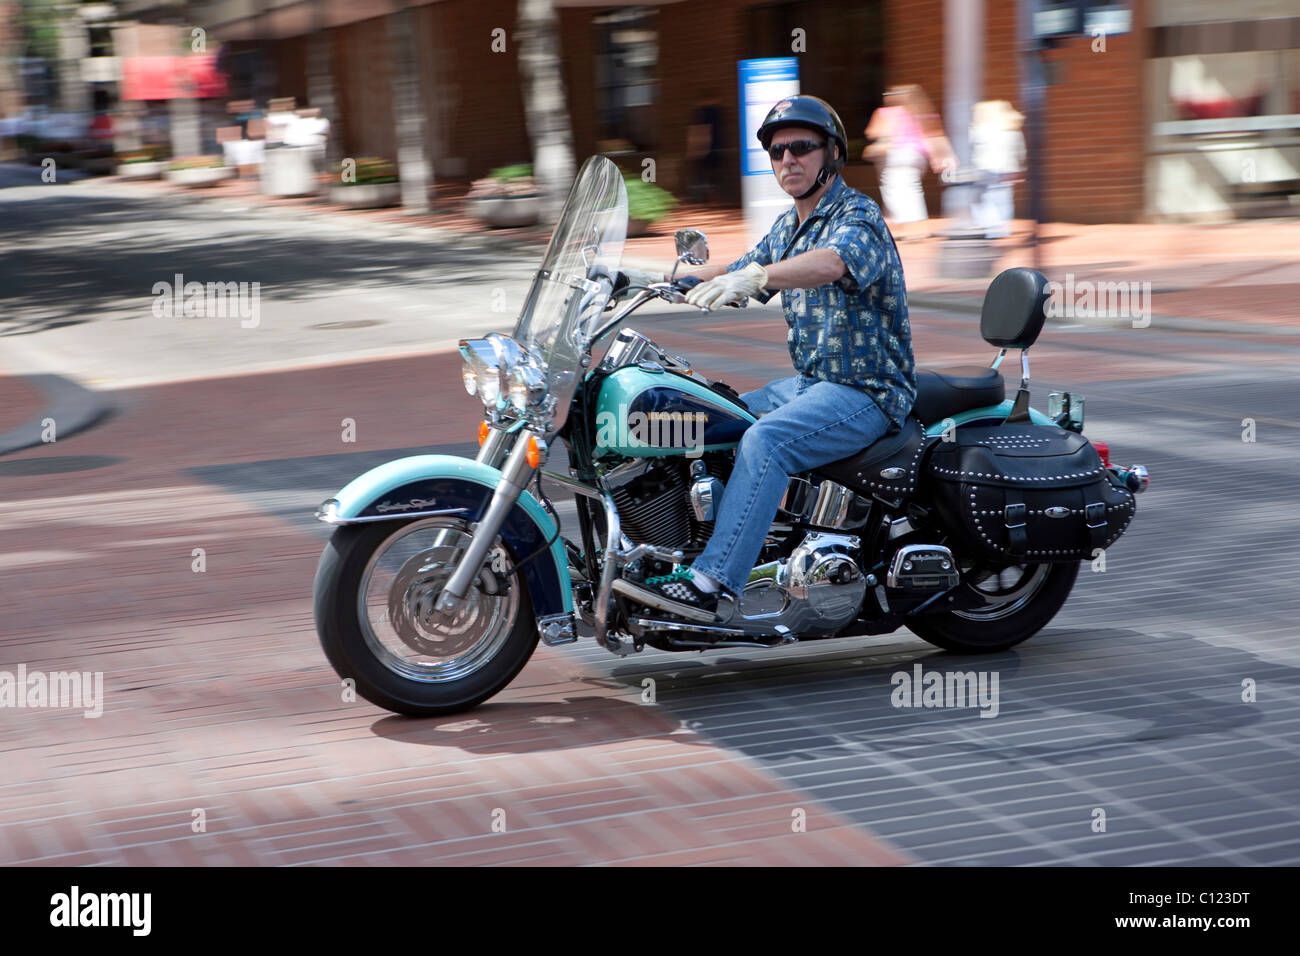 Man Riding Harley Davidson Stock Photos & Man Riding Harley Davidson